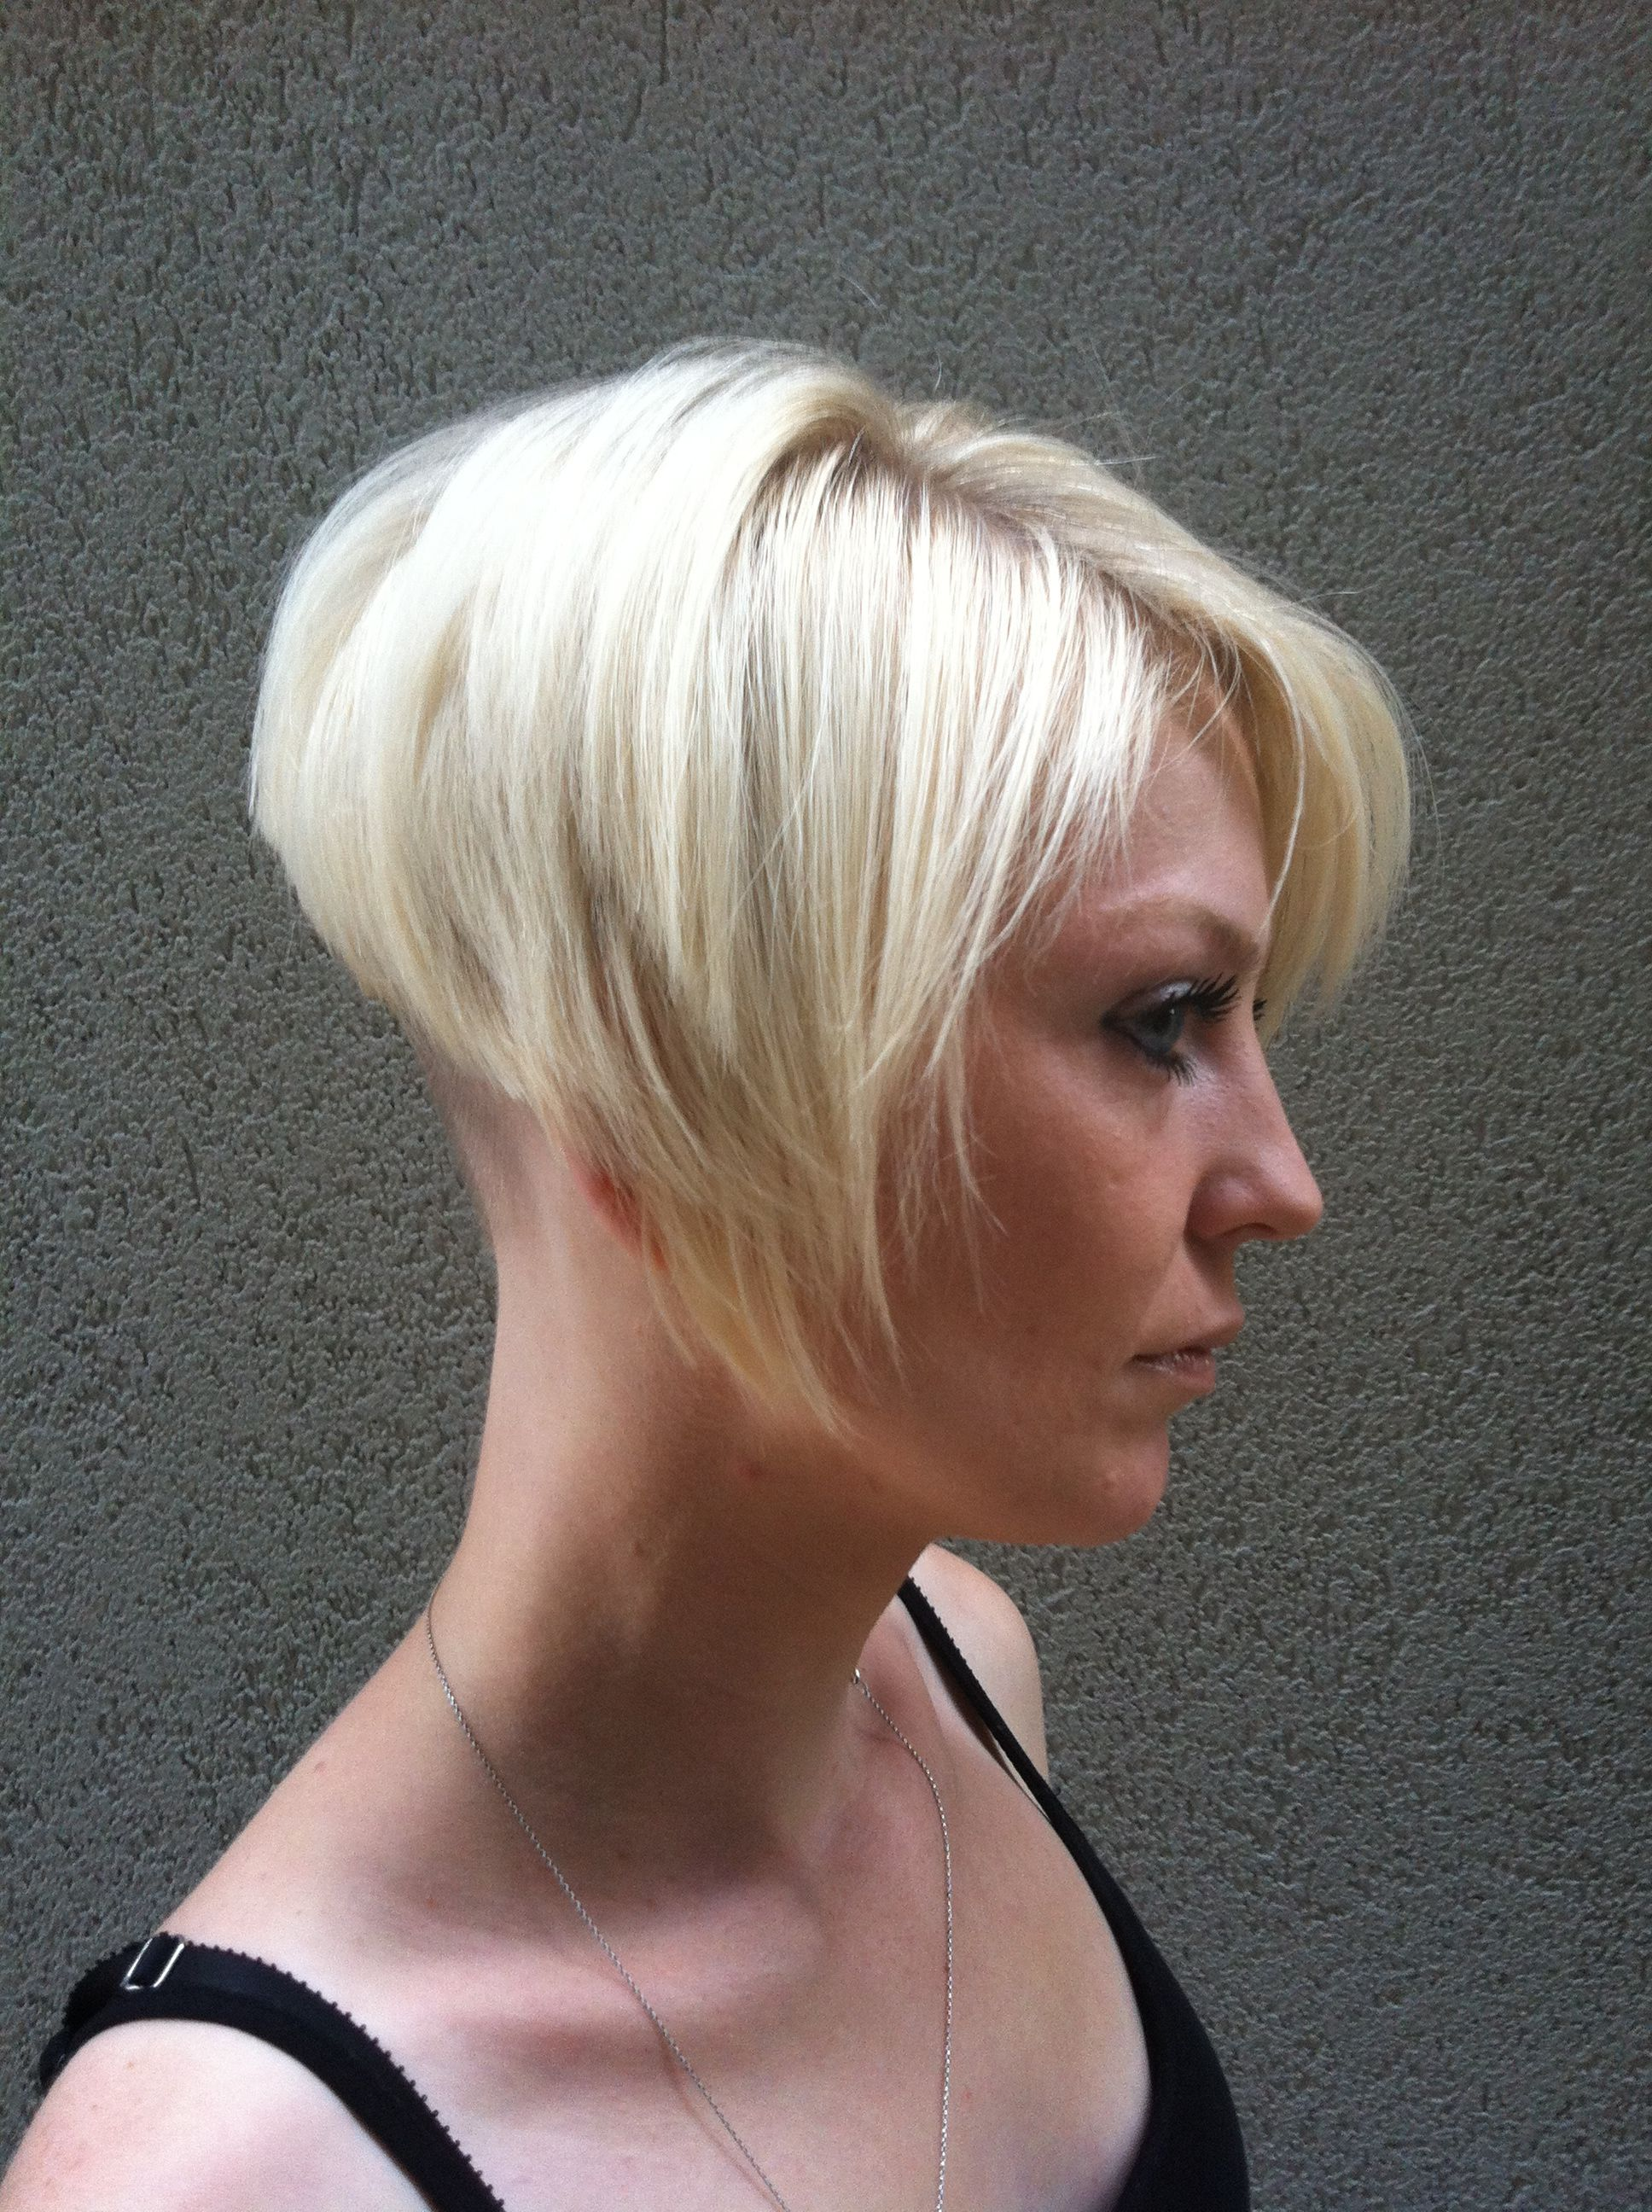 Pin by peter on beautiful short hairstyles pinterest bobs reverse bob haircut prom hairstyles with bangsfringe hairstyles balayage trending black hairstyleshalf up half down hairstyles shaggy layered hairstyles winobraniefo Image collections